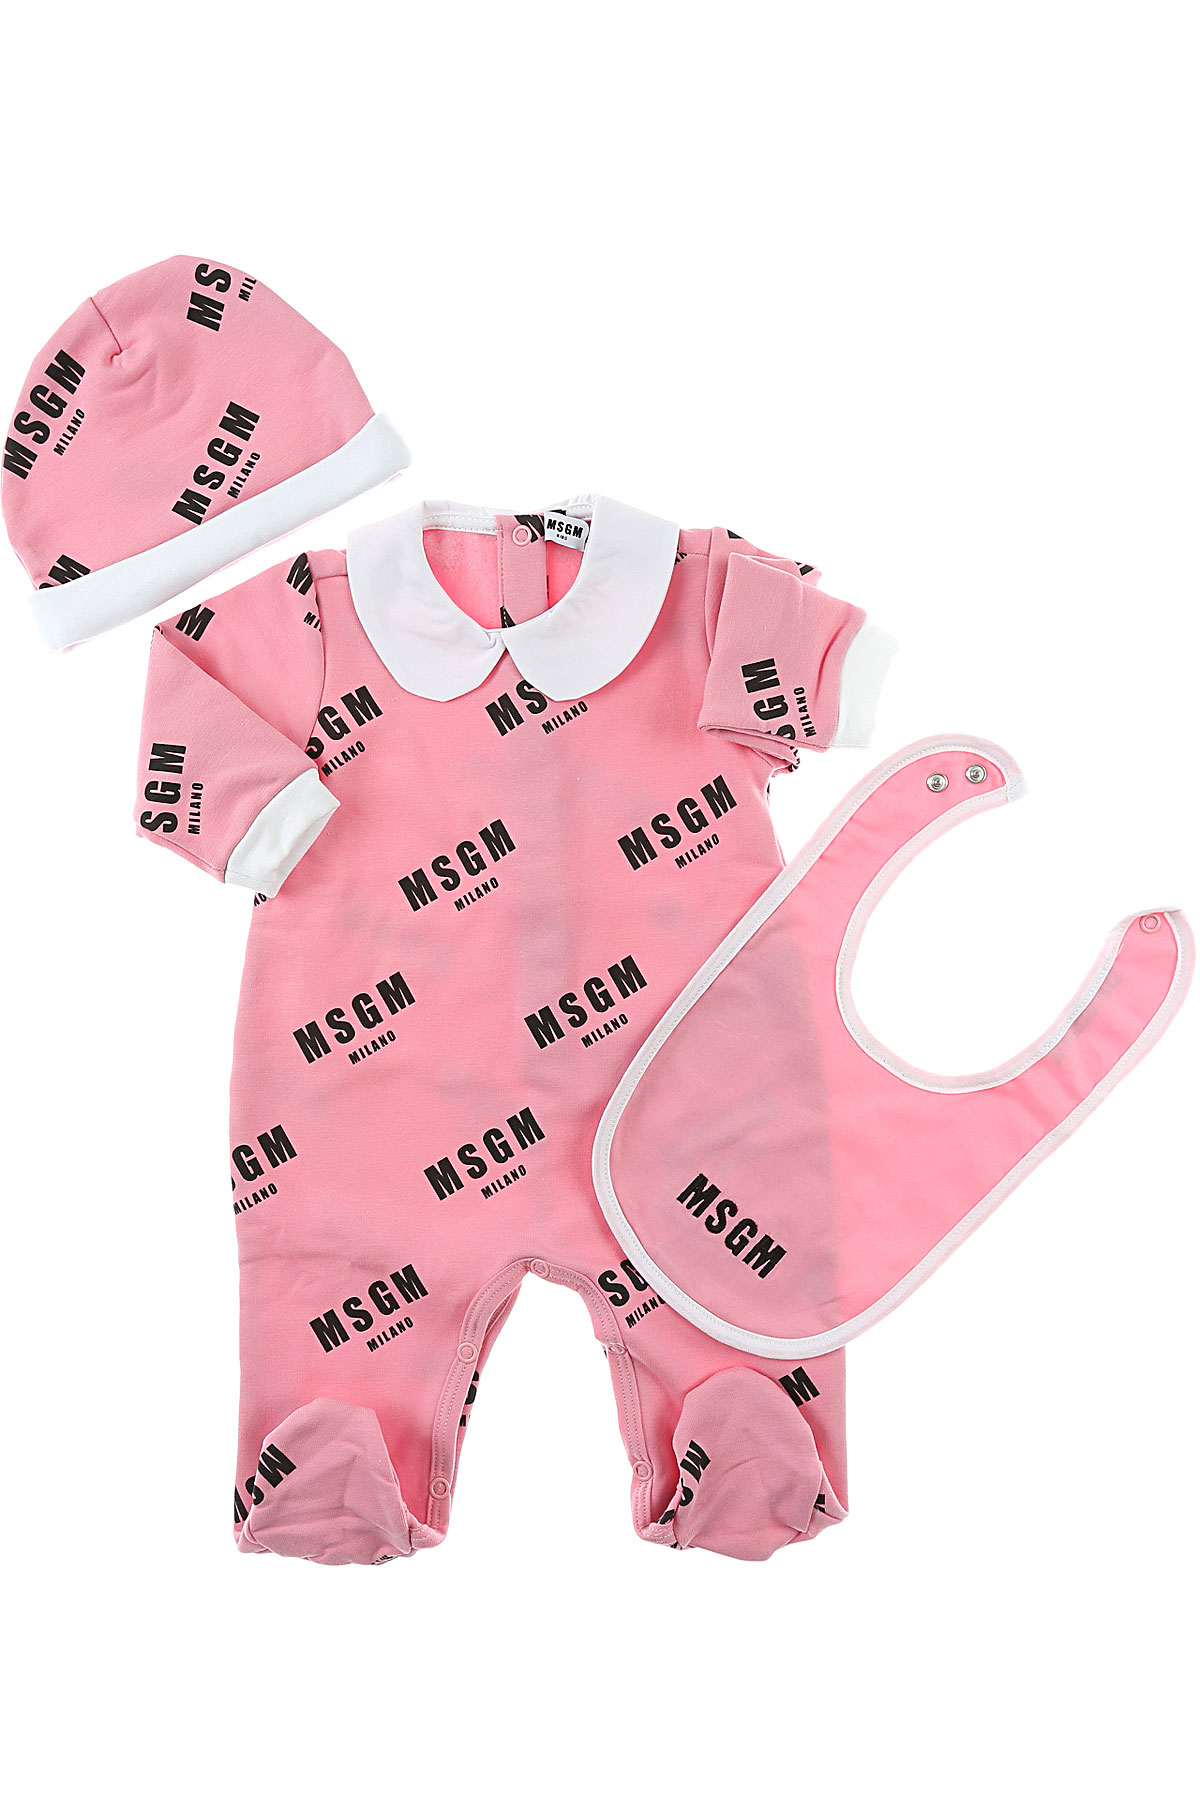 Image of MSGM Baby Sets for Girls, Pink, Cotton, 2017, 12M 18M 6M 9M